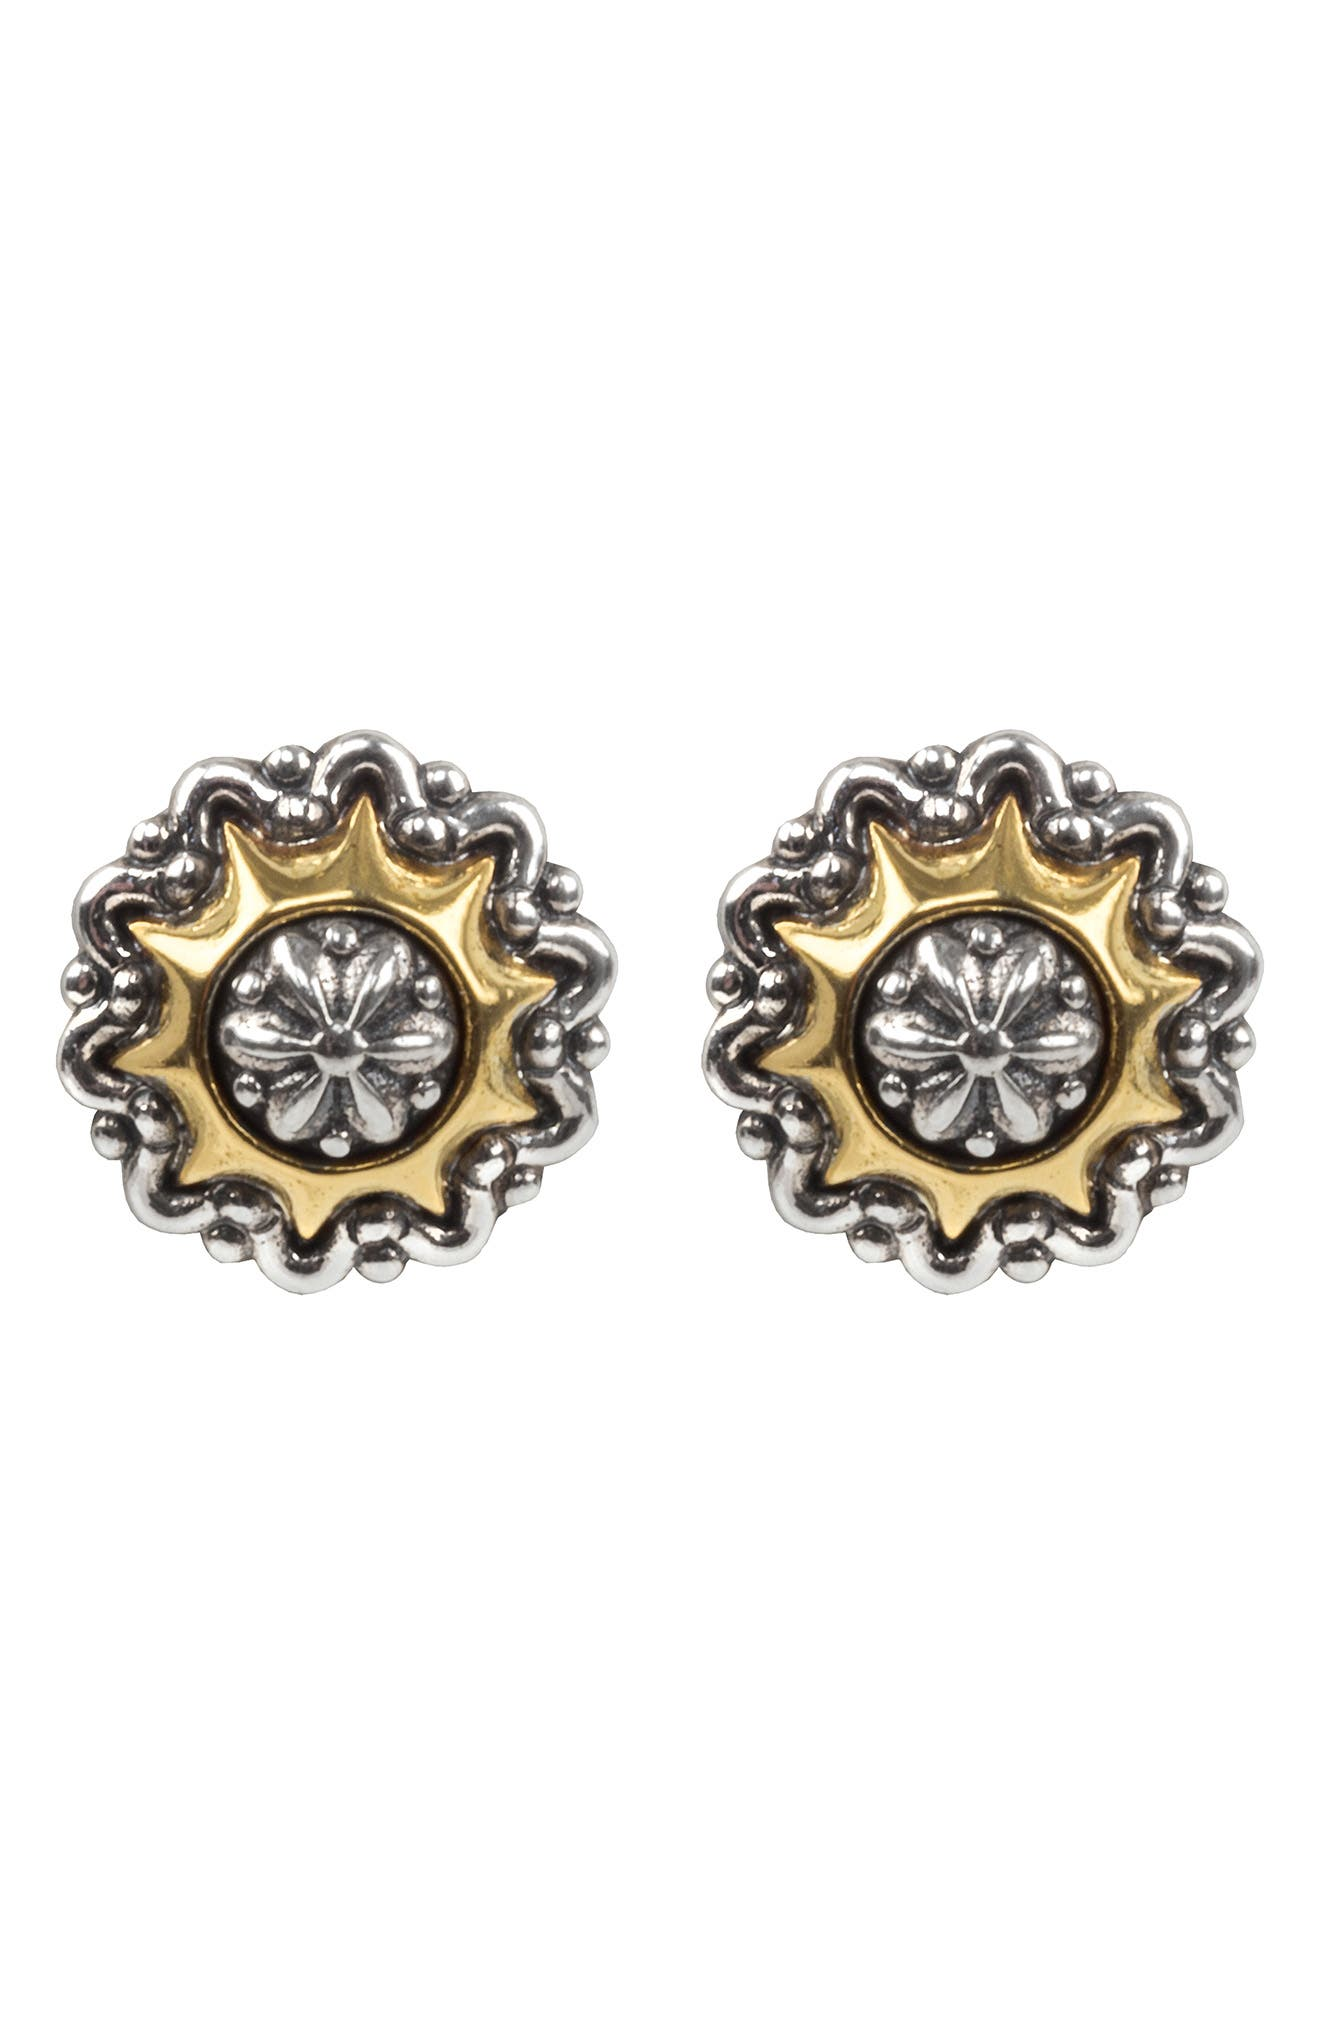 Gleaming sterling silver stud earrings are crowned with a frame of 18k gold for exceptional style. Style Name: Konstantino Astria Supernova Stud Earrings. Style Number: 6033198. Available in stores.